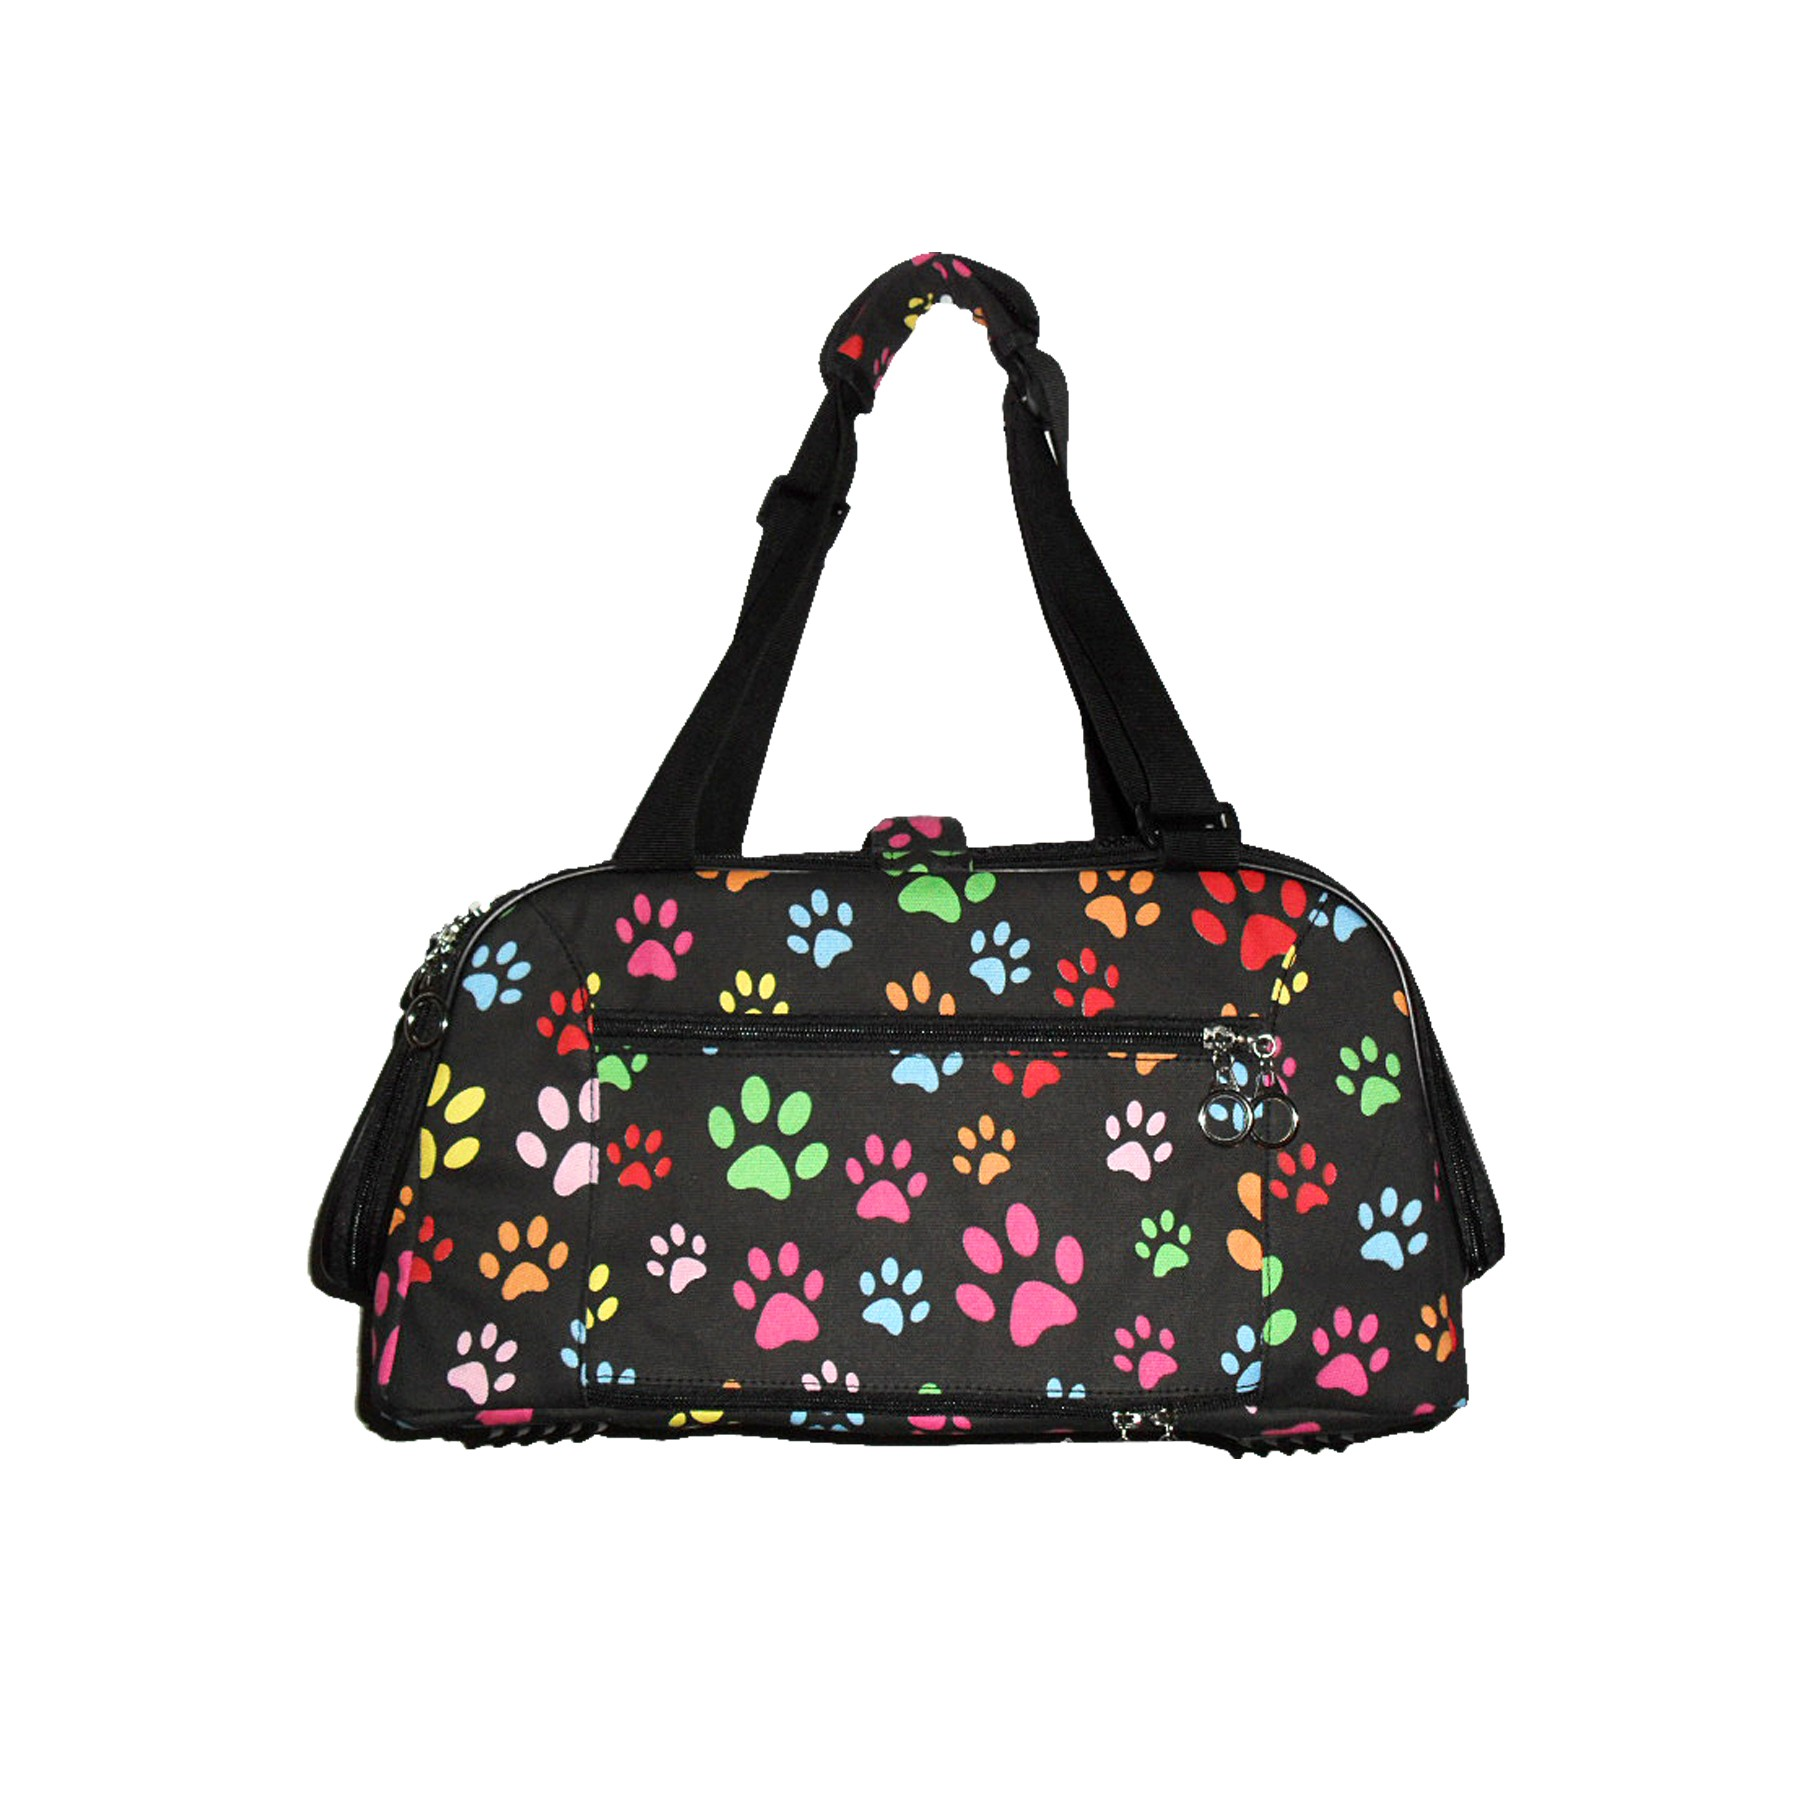 Dog Soft Shoulder Travel Bag - paw prints